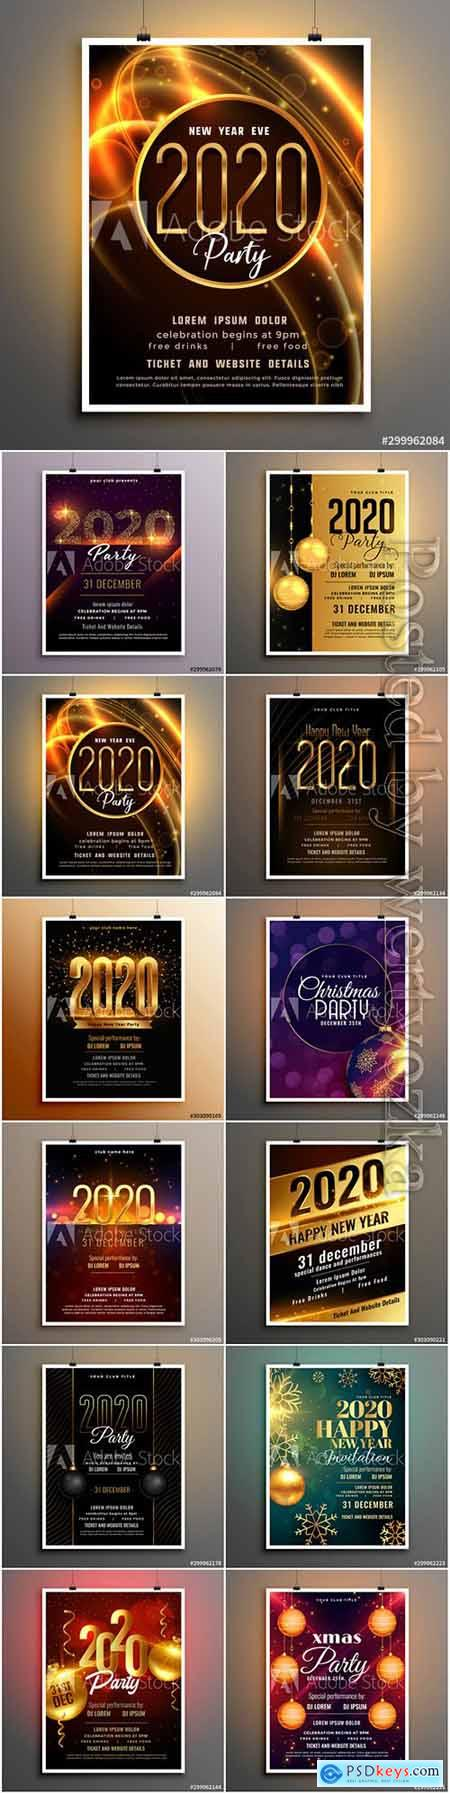 2020 new year shiny party event flyer design template